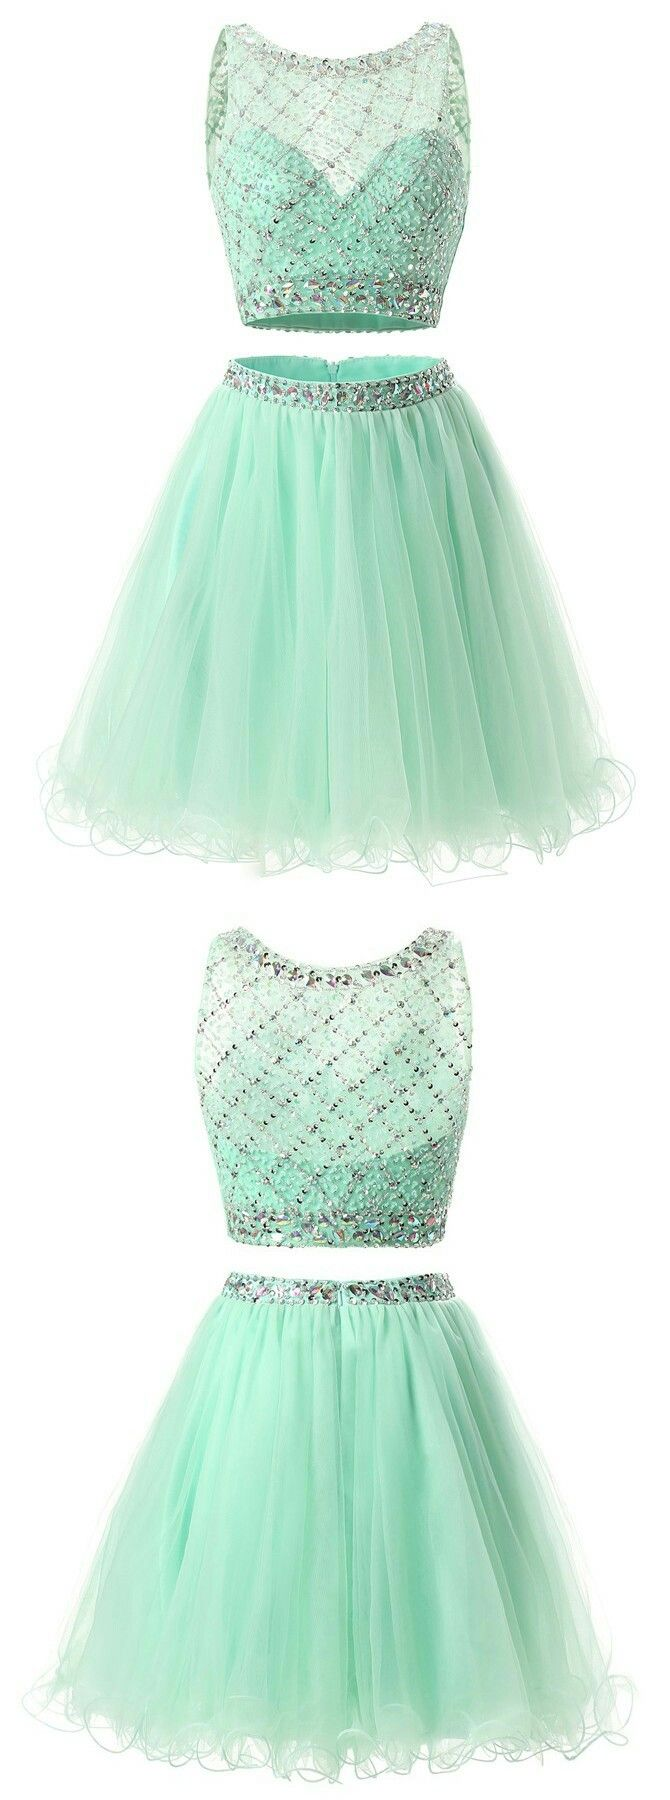 Two piece crew aboveknee peach tulle homecoming dress with beading